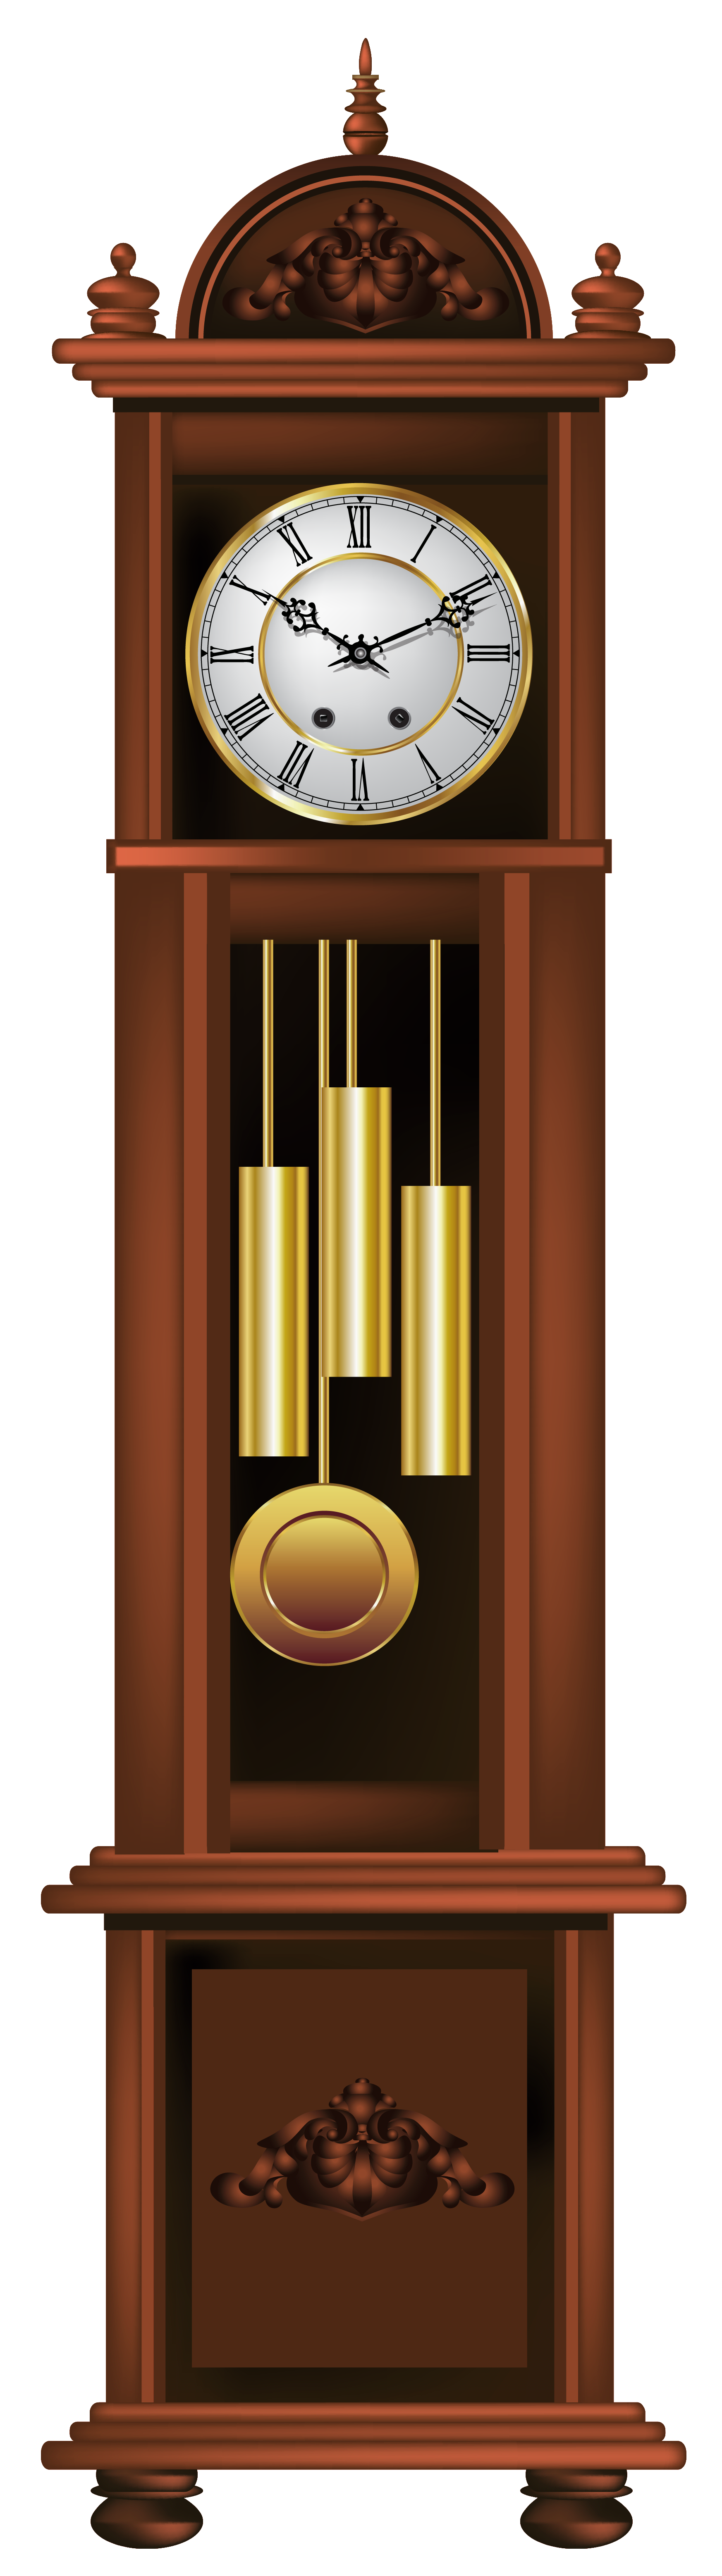 jpg royalty free library Antique Grandfather Clock PNG Clip Art